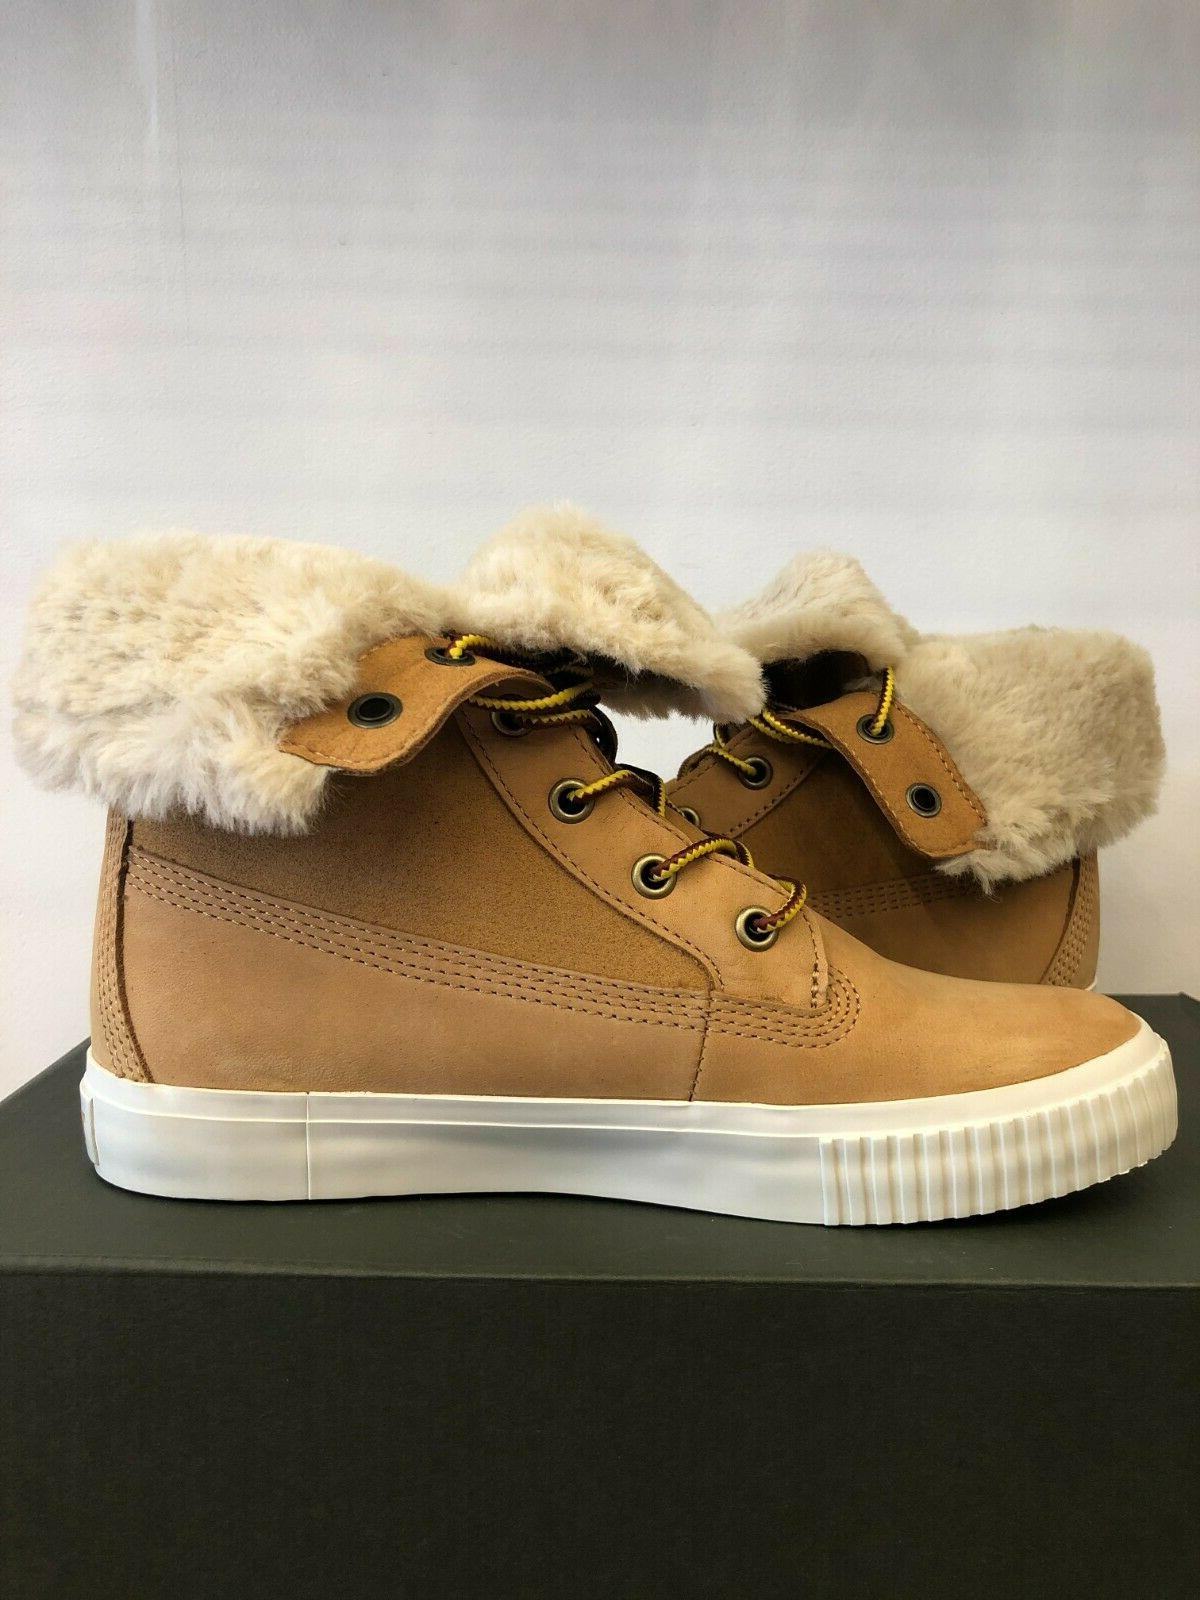 NEW IN BOX TIMBERLAND SKYLA BOOTS